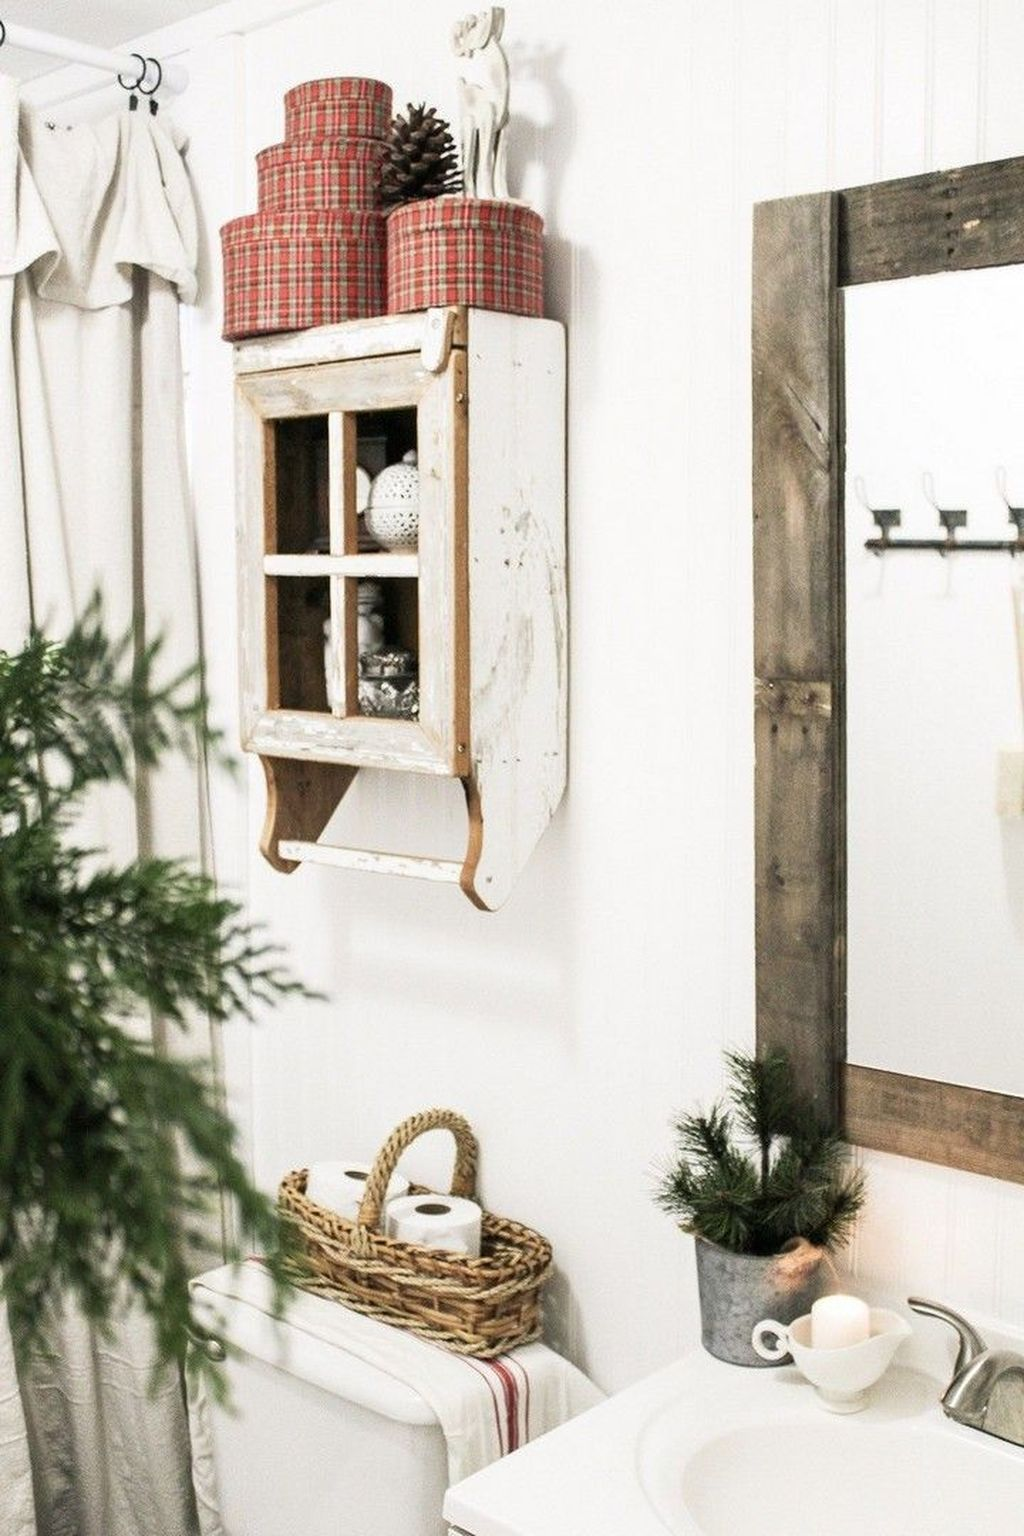 Fabulous Christmas Theme Bathroom Decor Ideas Trend 2019 18